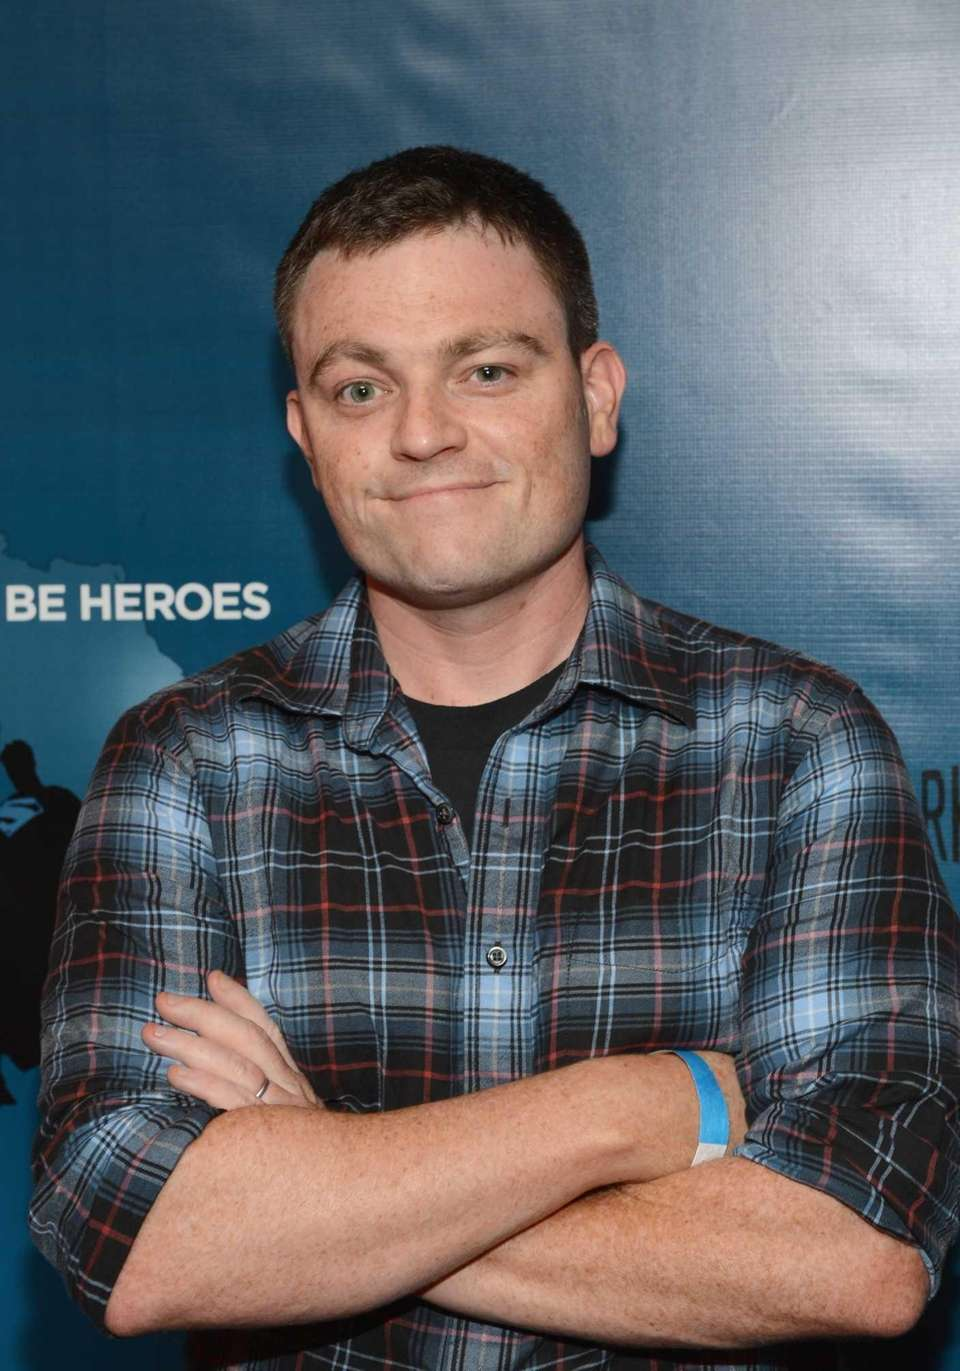 Comic book writer Scott Snyder lives on Long